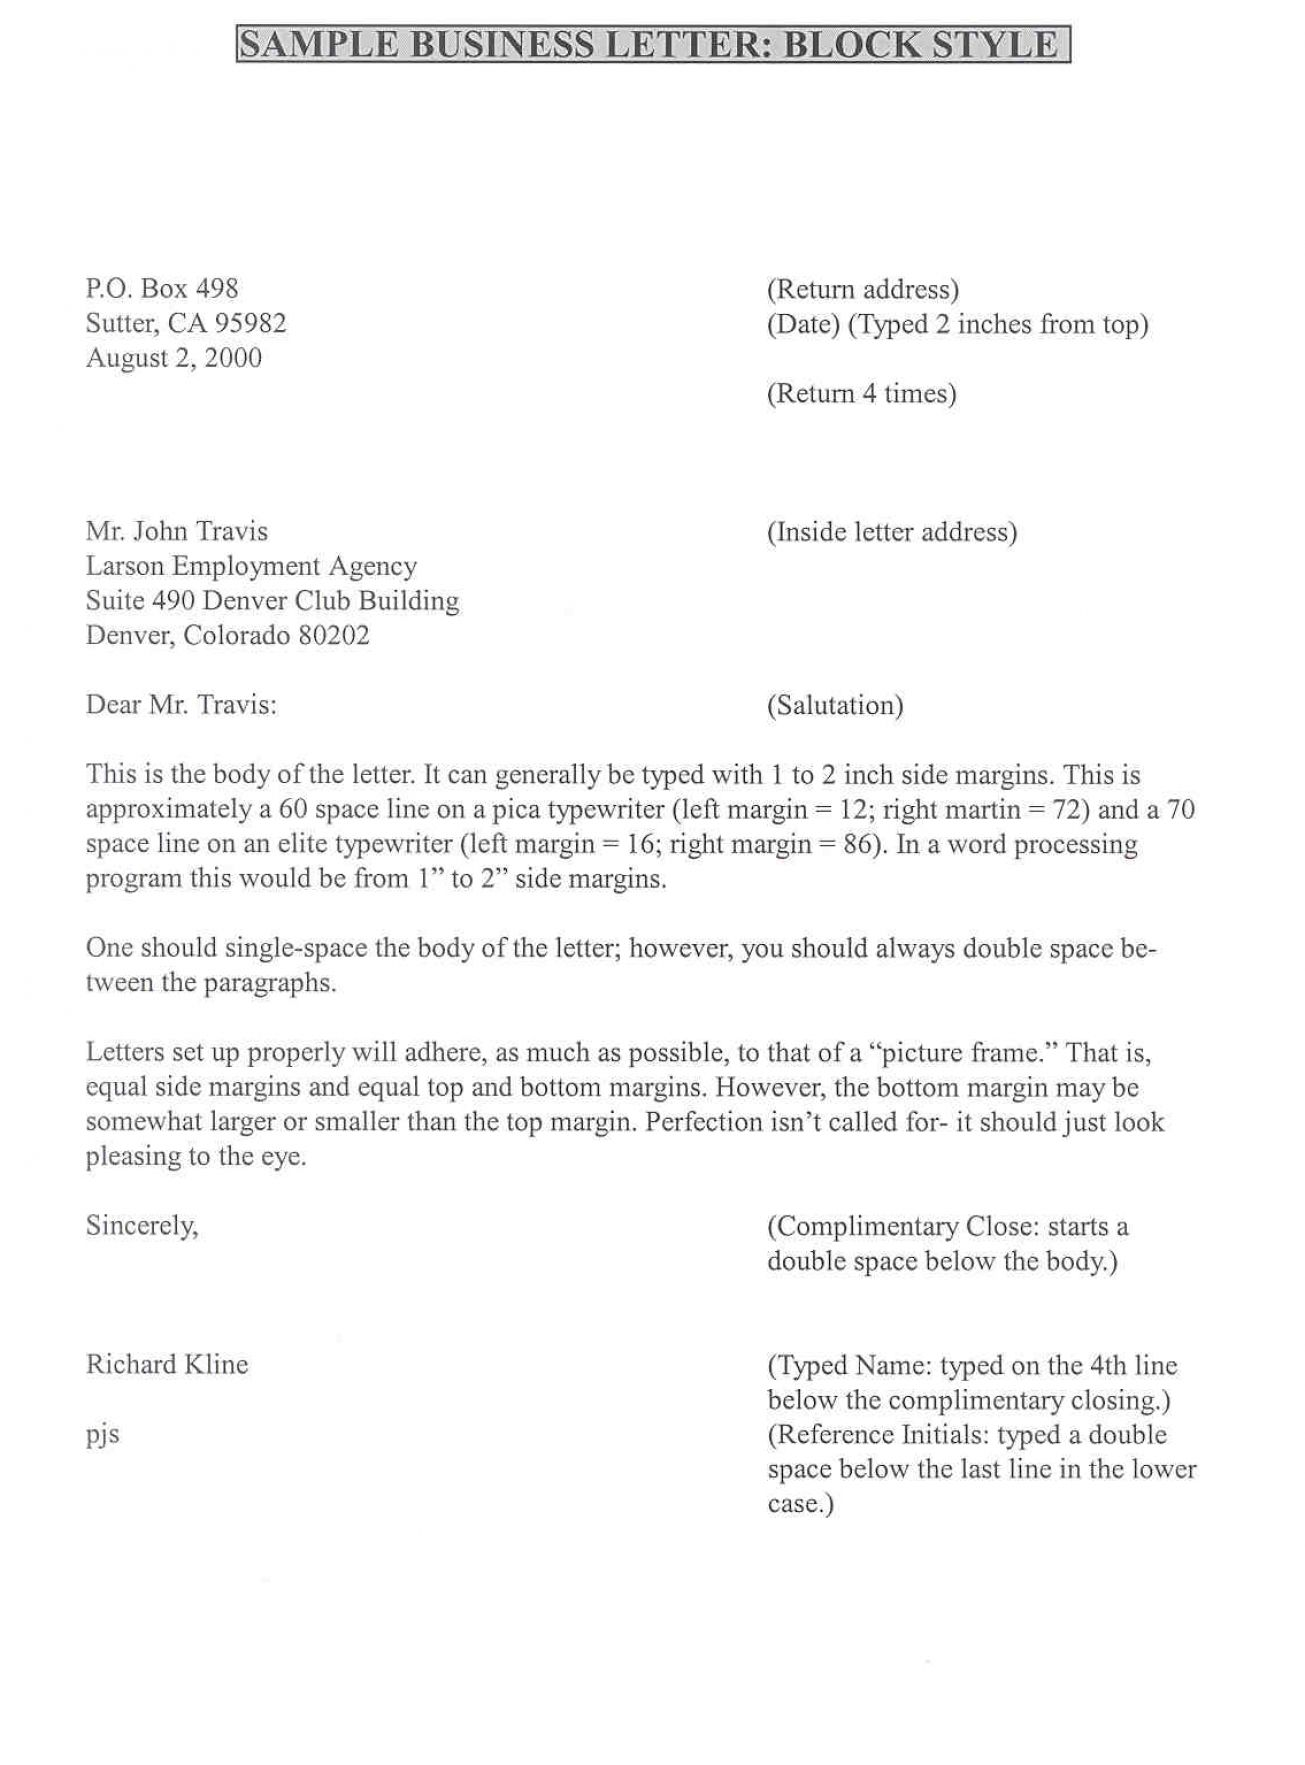 How to write a letter of complaint complaint letter sample to your complaint letter sample to your boss cover letter examples and complaint letter sample to your boss altavistaventures